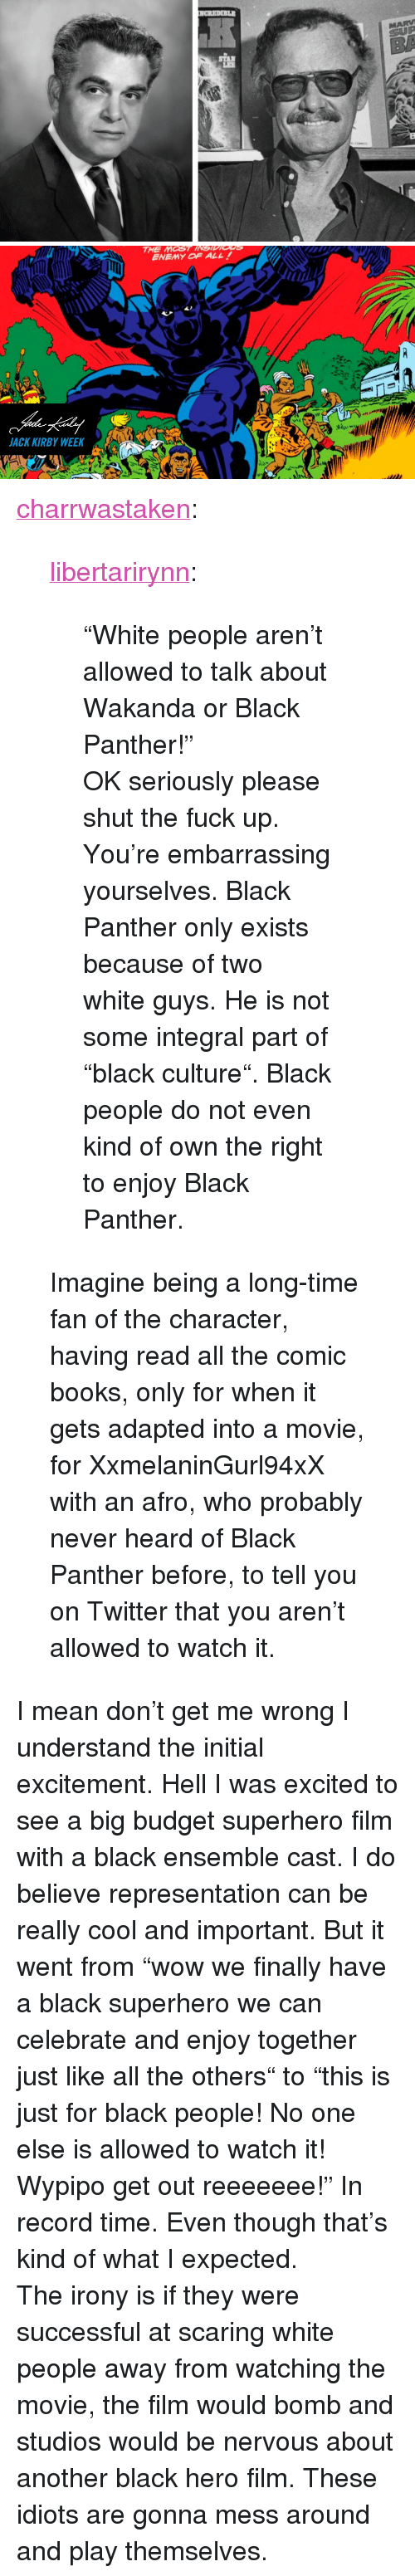 """white guys: LEE   THE MOST INSIDIGns  ENEMY OF ALL  JACK KIRBY WEEKA <p><a href=""""https://charrwastaken.tumblr.com/post/170981224483/libertarirynn-white-people-arent-allowed-to"""" class=""""tumblr_blog"""">charrwastaken</a>:</p>  <blockquote><p><a href=""""https://libertarirynn.tumblr.com/post/170981033654/white-people-arent-allowed-to-talk-about-wakanda"""" class=""""tumblr_blog"""">libertarirynn</a>:</p><blockquote> <p>""""White people aren't allowed to talk about Wakanda or Black Panther!""""</p>  <p>OK seriously please shut the fuck up. You're embarrassing yourselves. Black Panther only exists because of two white guys. He is not some integral part of """"black culture"""". Black people do not even kind of own the right to enjoy Black Panther.</p> </blockquote> <p>Imagine being a long-time fan of the character, having read all the comic books, only for when it gets adapted into a movie, for XxmelaninGurl94xX with an afro, who probably never heard of Black Panther before, to tell you on Twitter that you aren't allowed to watch it.<br/></p></blockquote>  <p>I mean don't get me wrong I understand the initial excitement. Hell I was excited to see a big budget superhero film with a black ensemble cast. I do believe representation can be really cool and important. But it went from """"wow we finally have a black superhero we can celebrate and enjoy together just like all the others"""" to """"this is just for black people! No one else is allowed to watch it! Wypipo get out reeeeeee!"""" In record time. Even though that's kind of what I expected.</p><p>The irony is if they were successful at scaring white people away from watching the movie, the film would bomb and studios would be nervous about another black hero film. These idiots are gonna mess around and play themselves.</p>"""